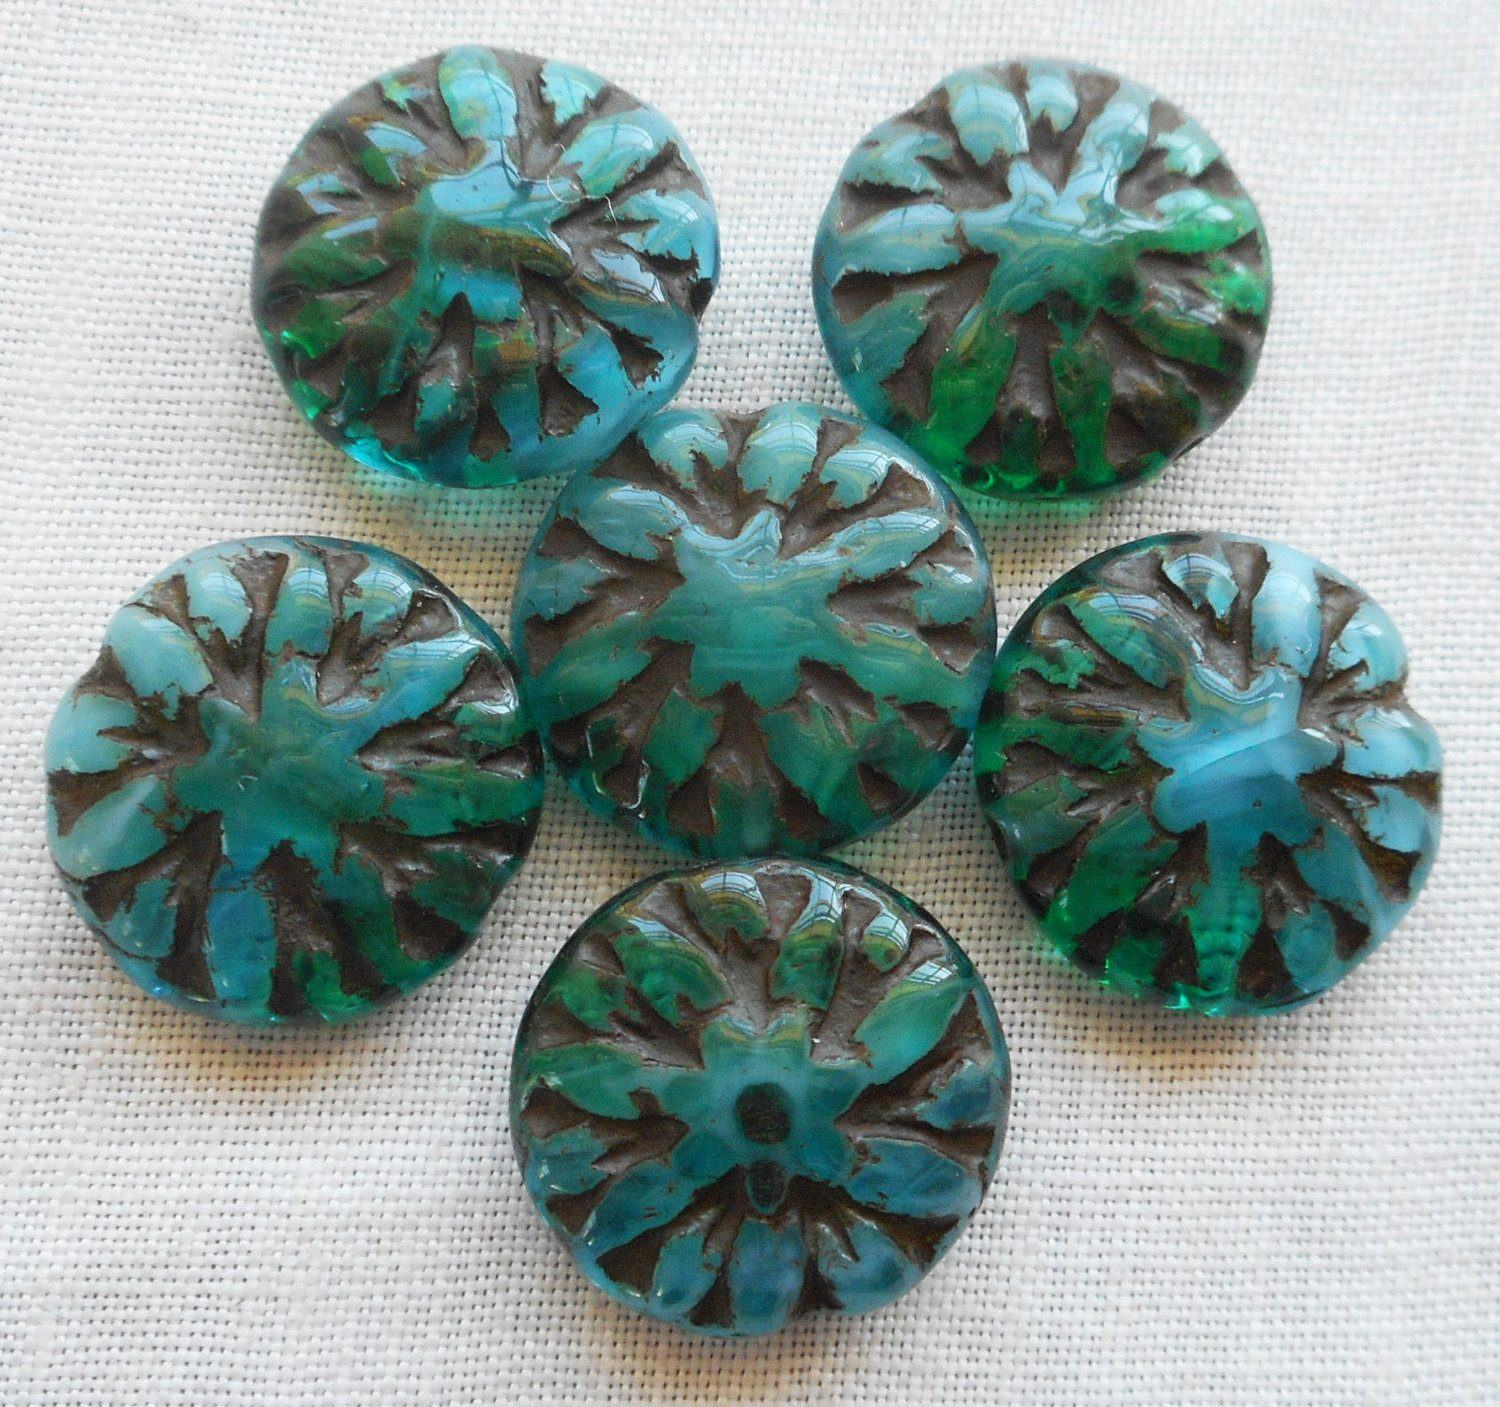 Six 14mm Opaque Translucent Teal Blue Green Picasso Dahlia